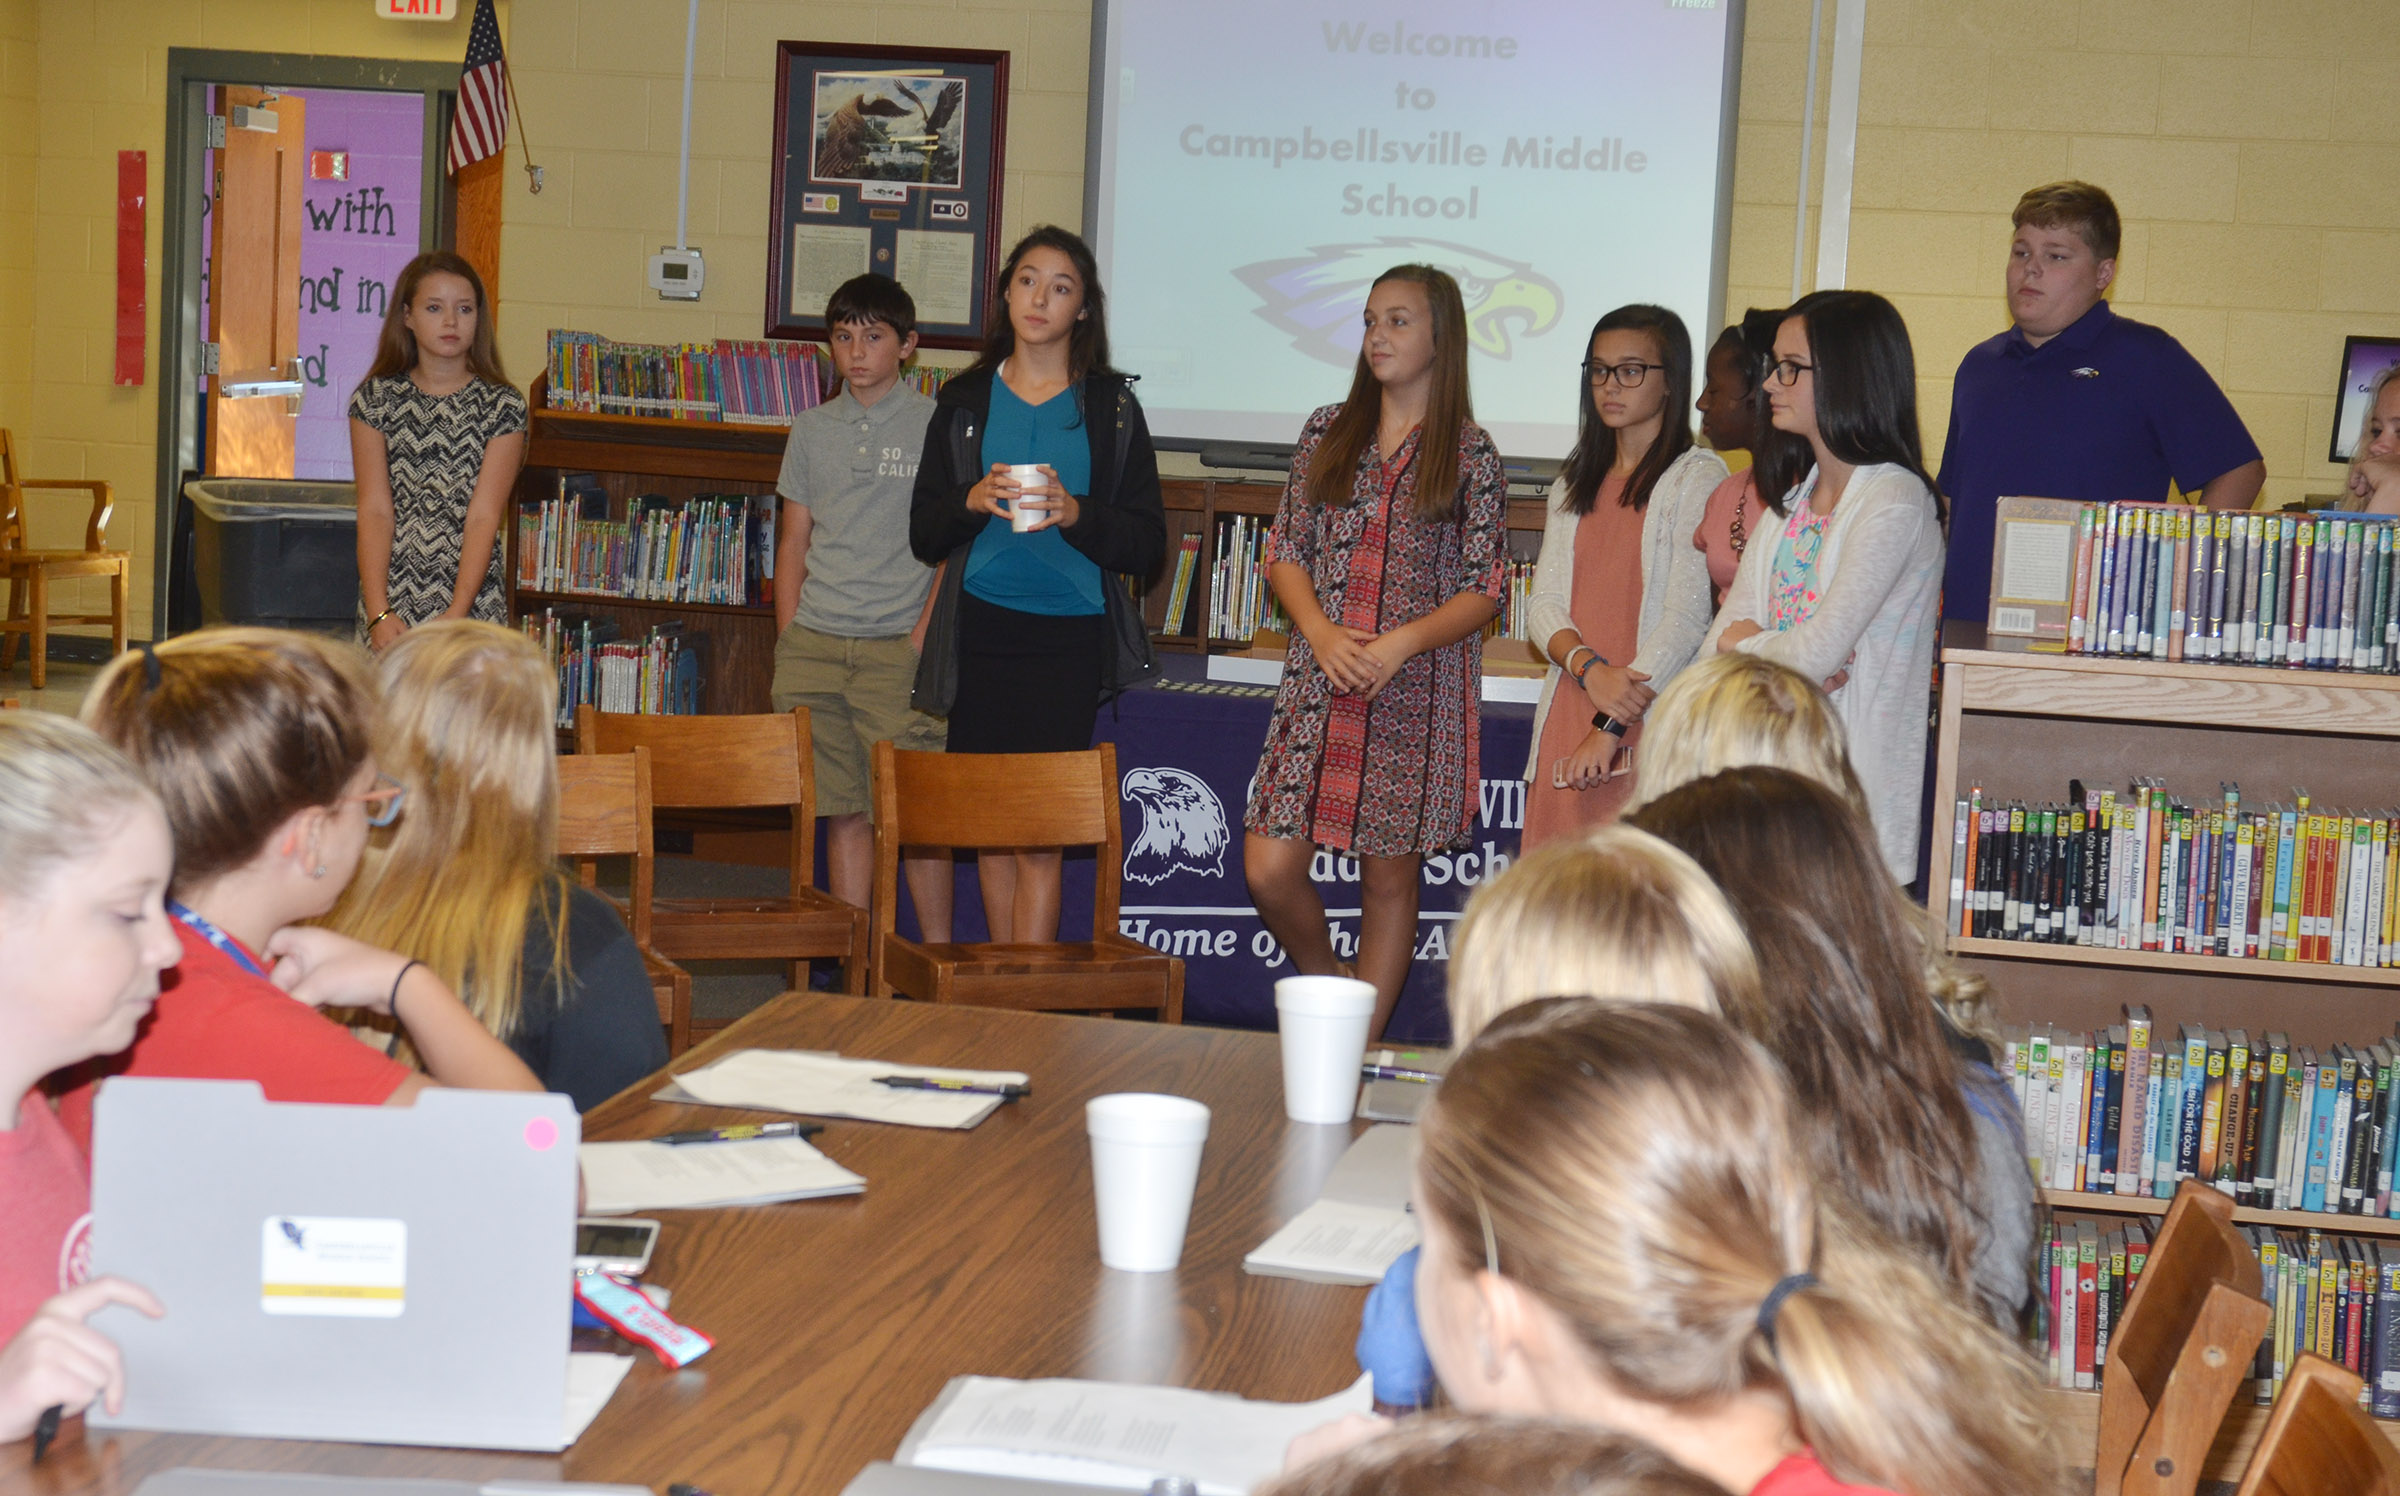 CMS Lighthouse Team members answer questions for their Casey County Middle School guests.